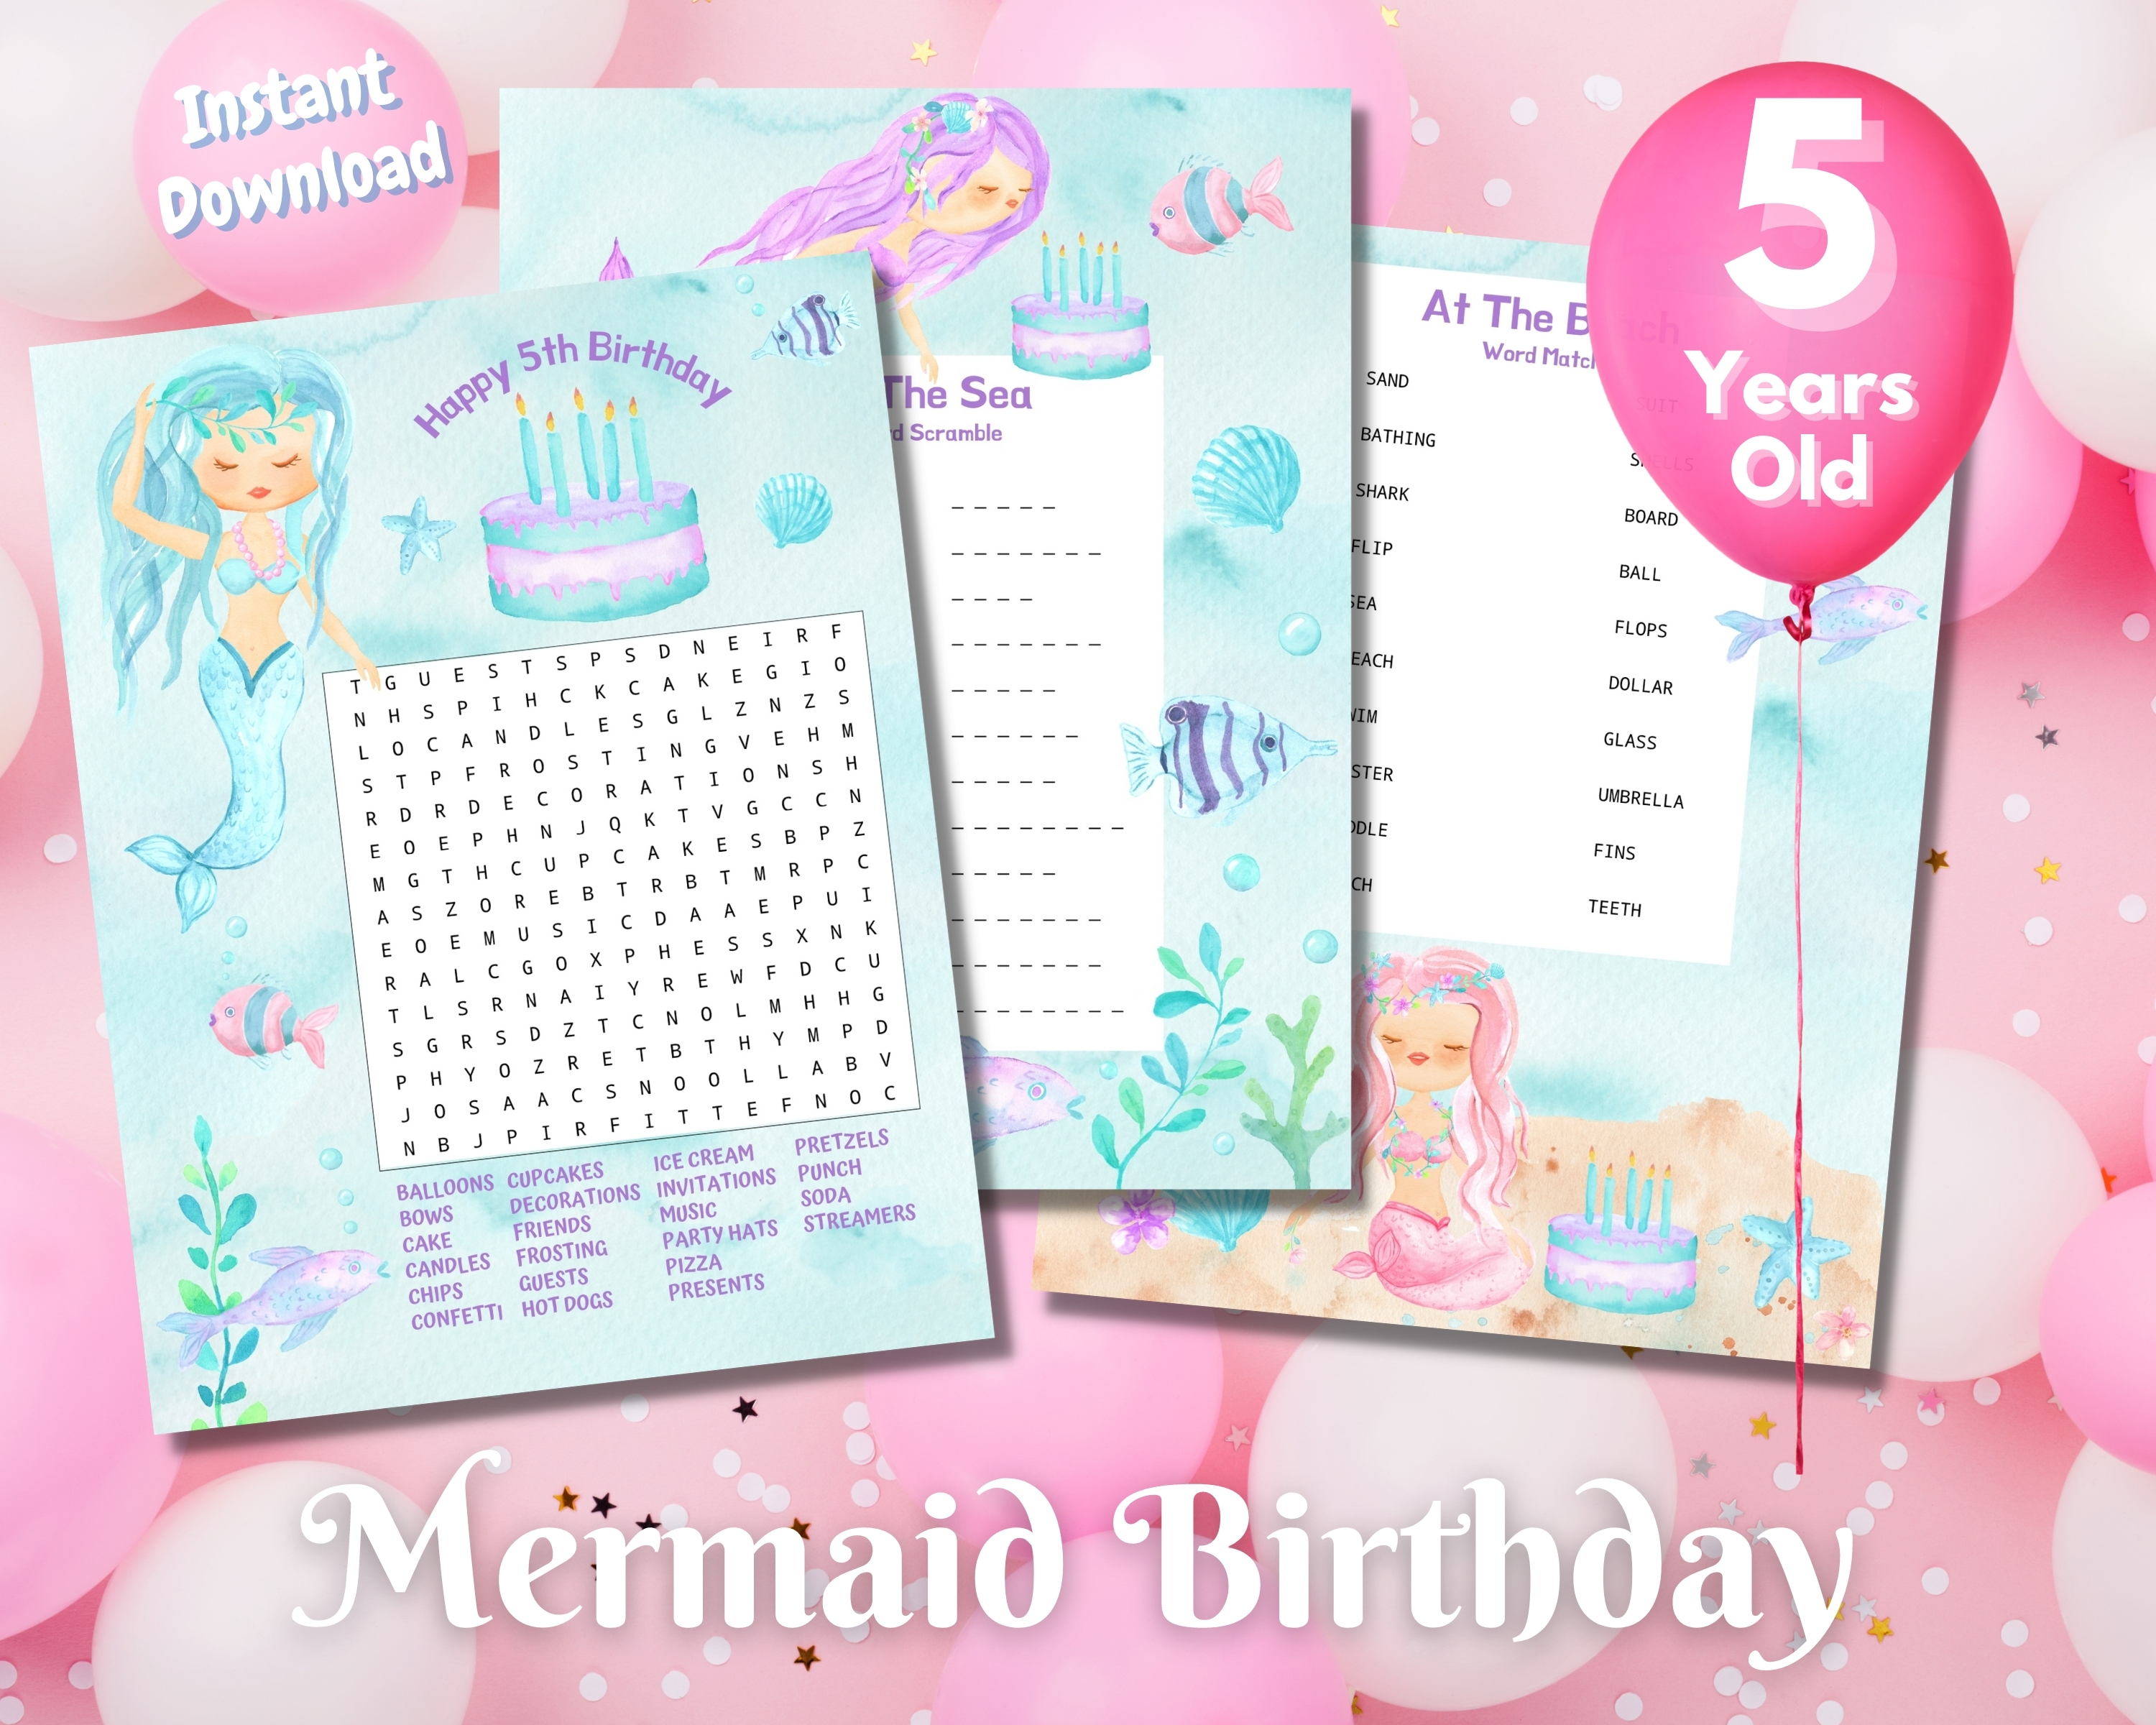 Fifth Mermaid Birthday Word Puzzles - Light Complexion